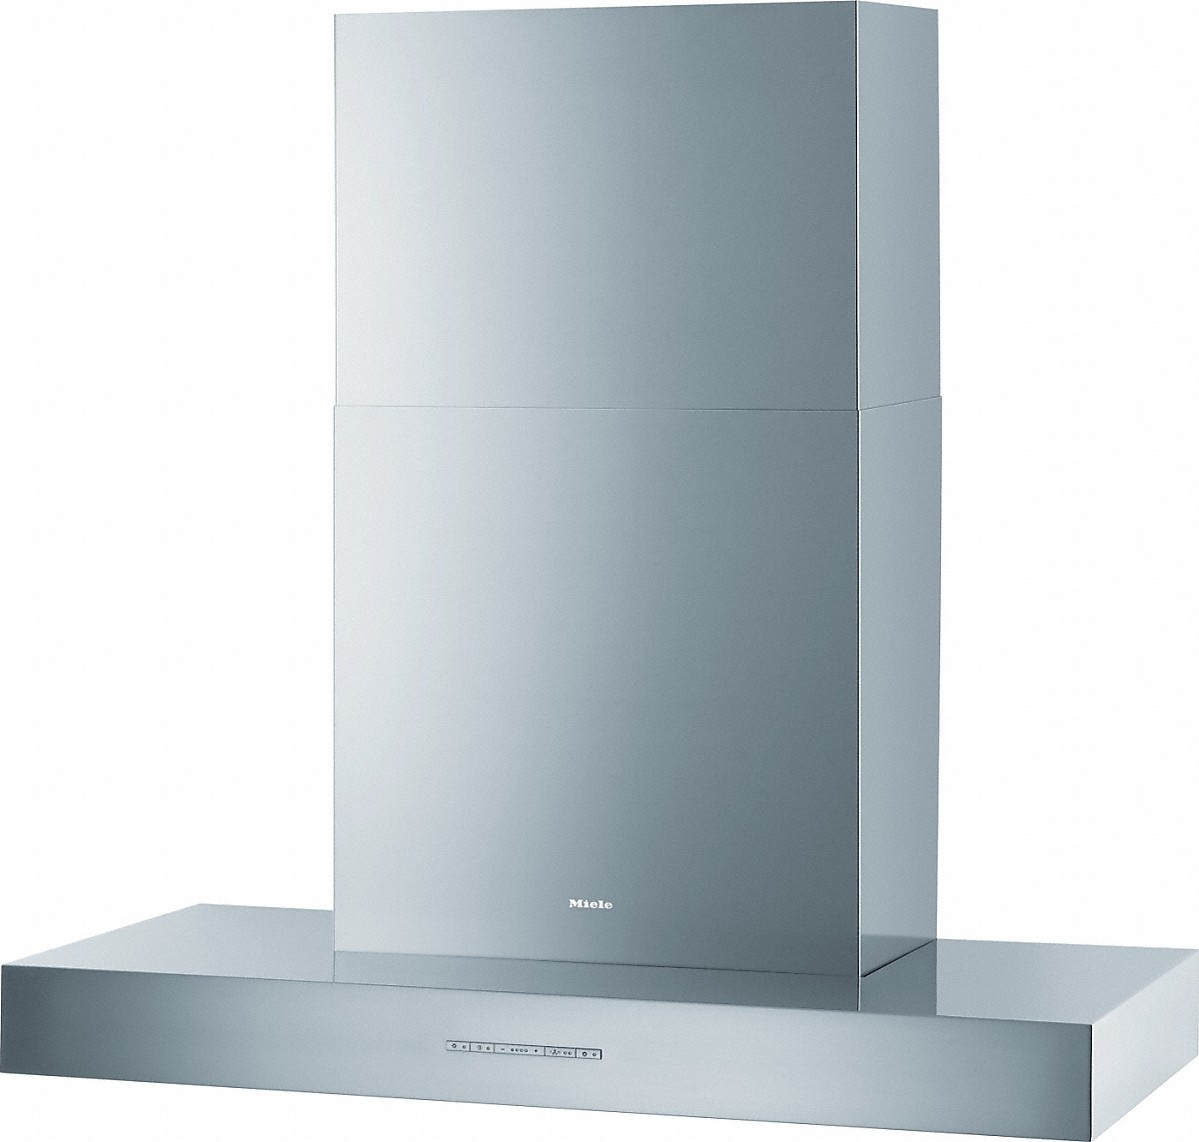 Miele DA 5320 W Puristic Maxime Wall mounted cooker hood